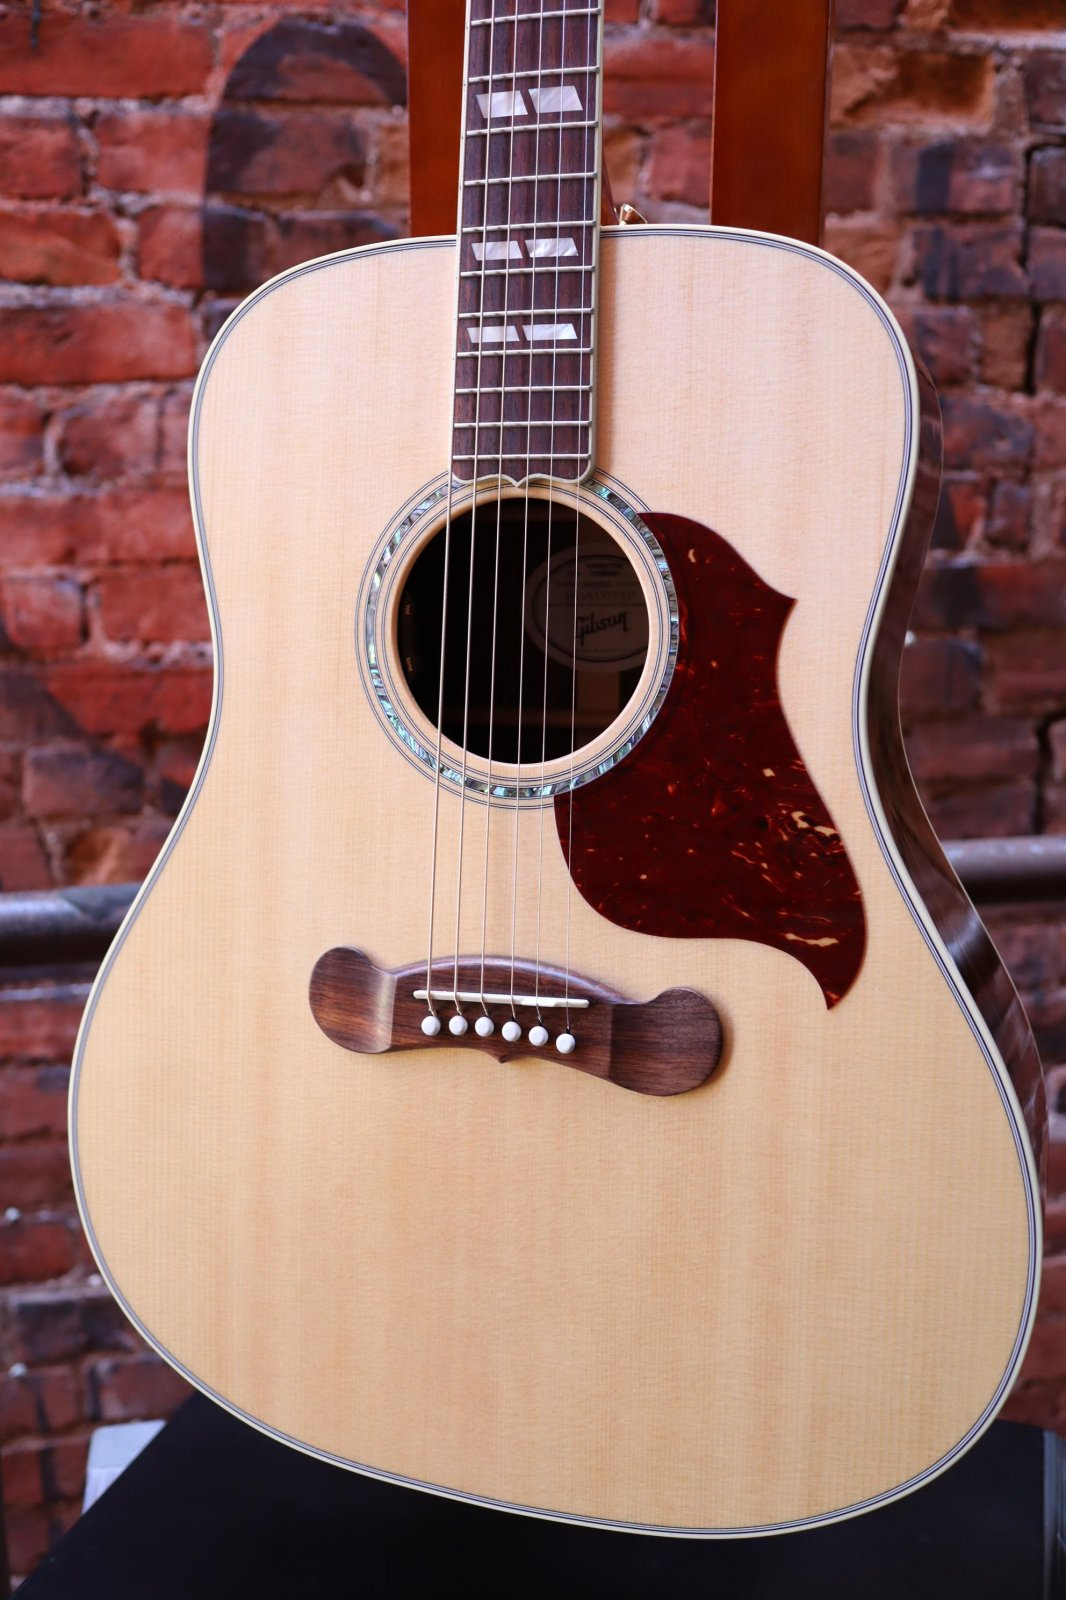 Gibson 2019 Songwriter Rosewood - Antique Natural Demo Model